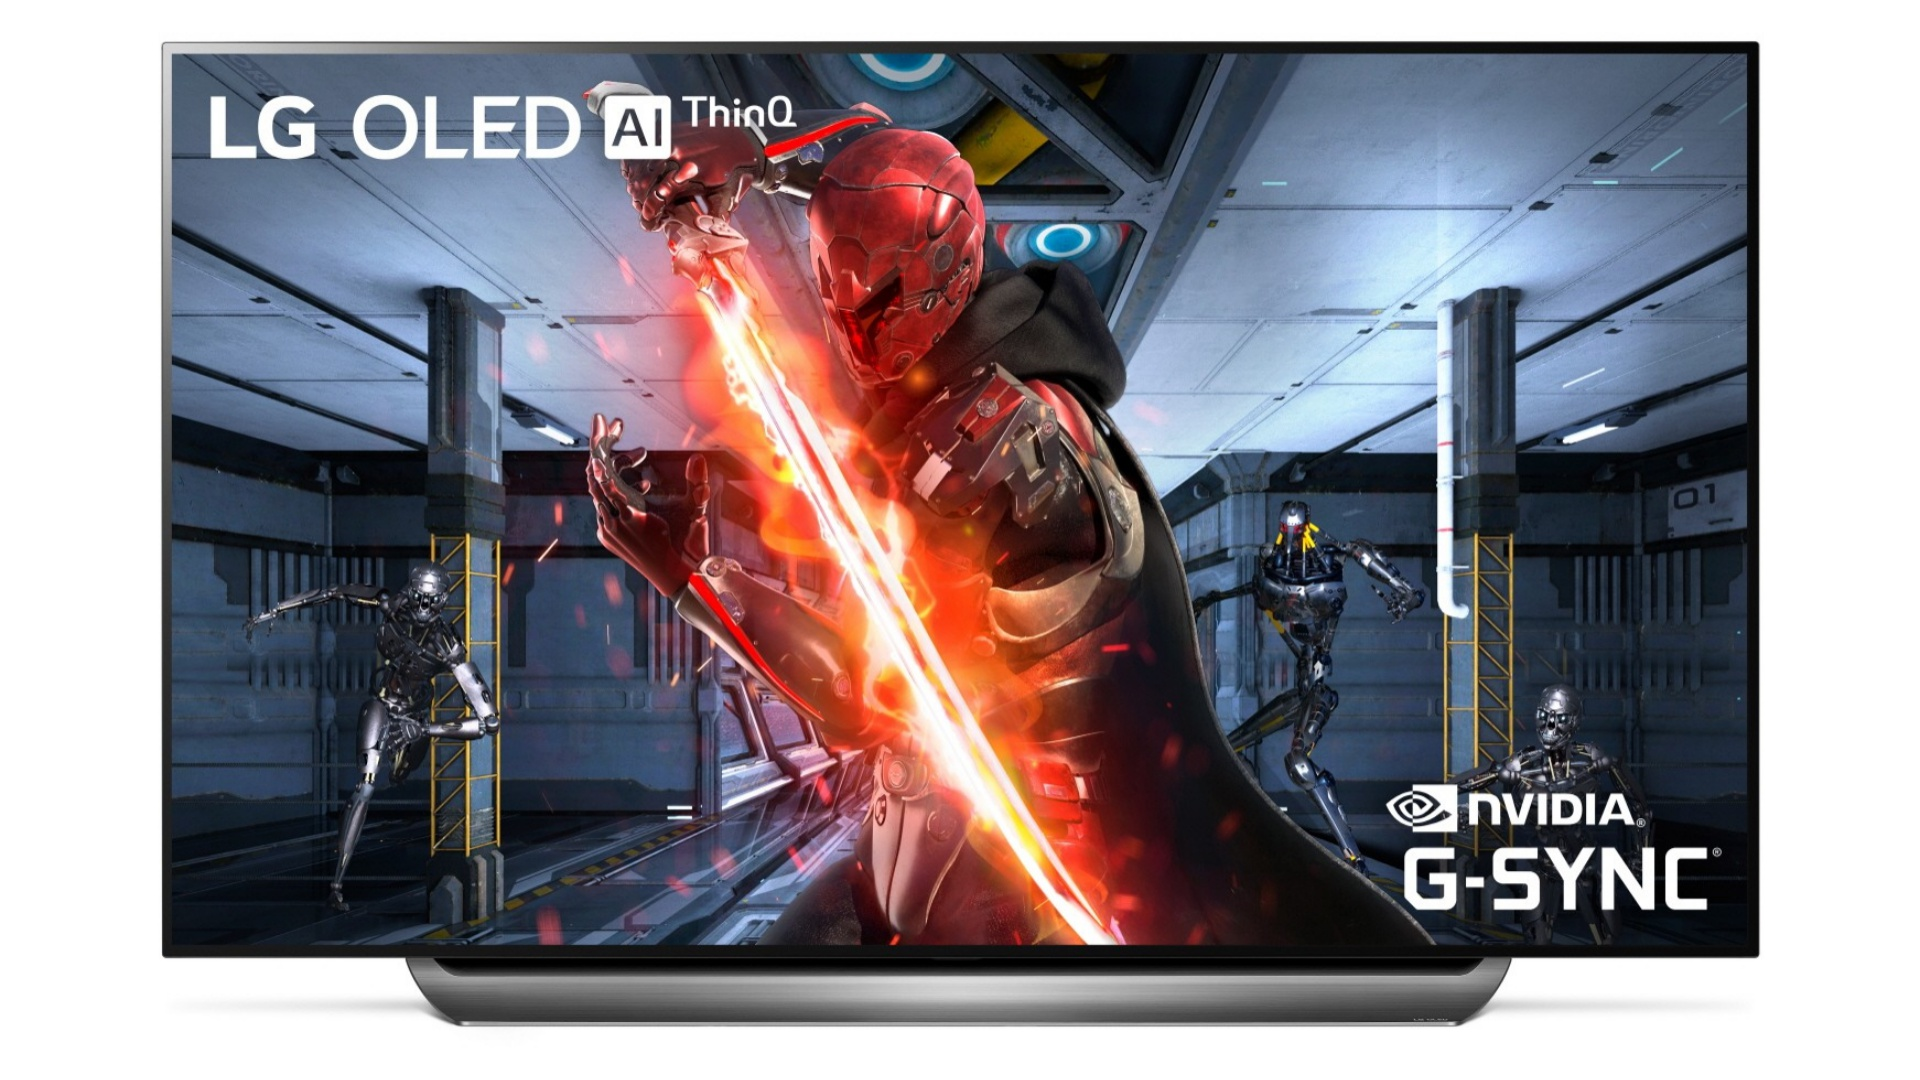 LG adds NVIDIA G-Sync tech into its 2019 OLED TVs